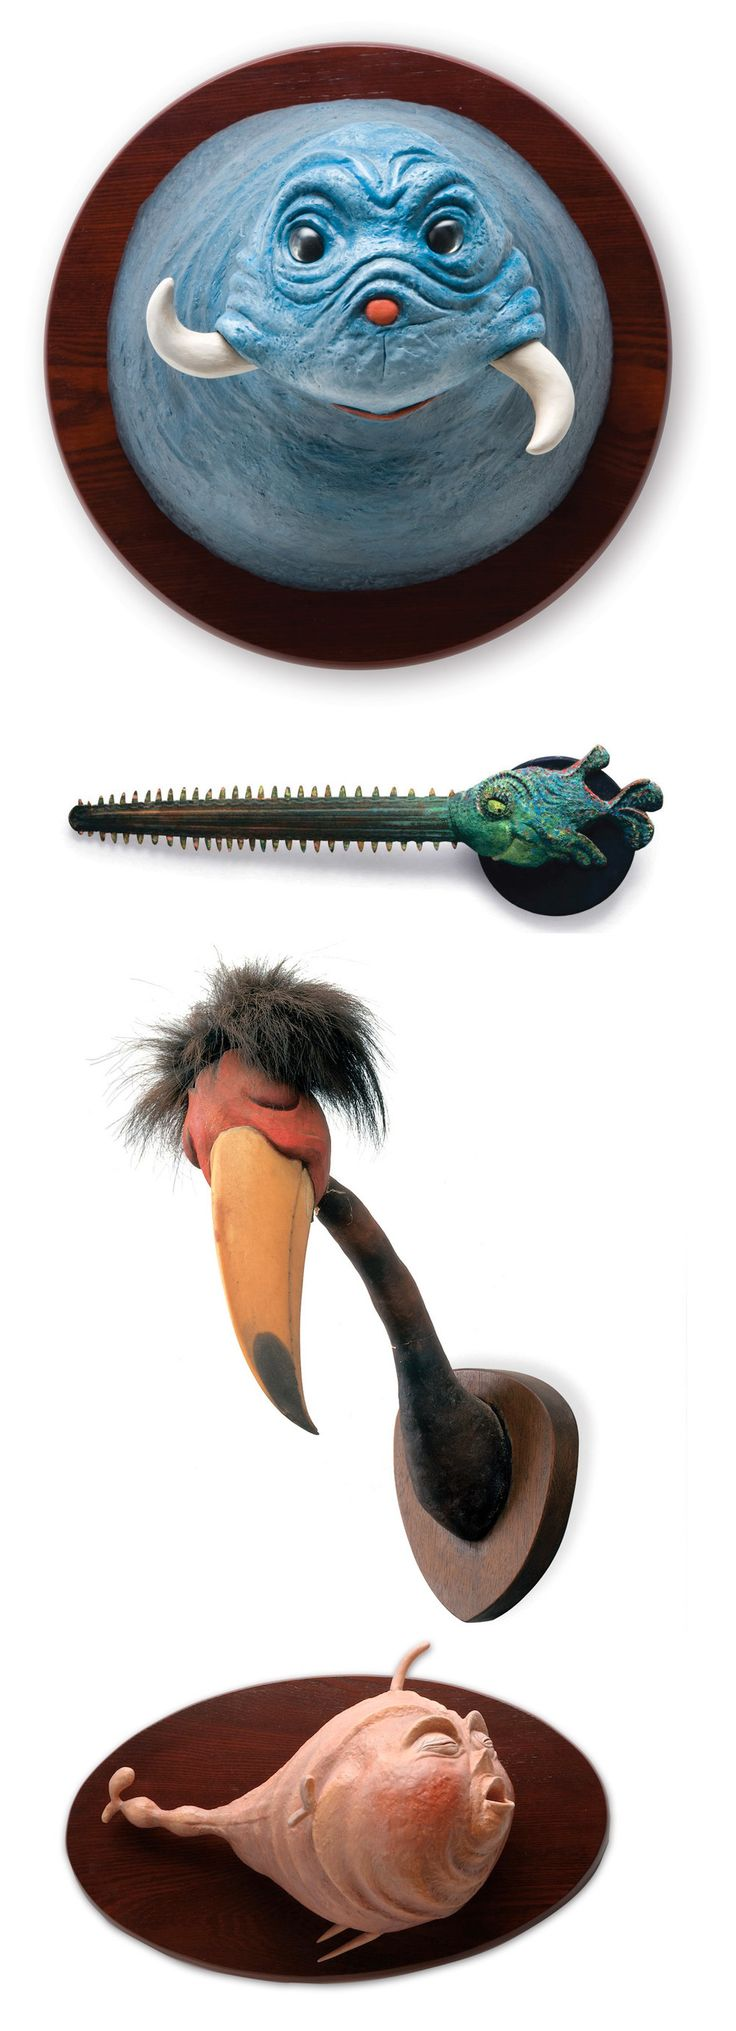 Taxidermy Renderings of Dr. Seuss' Fantastical Beings